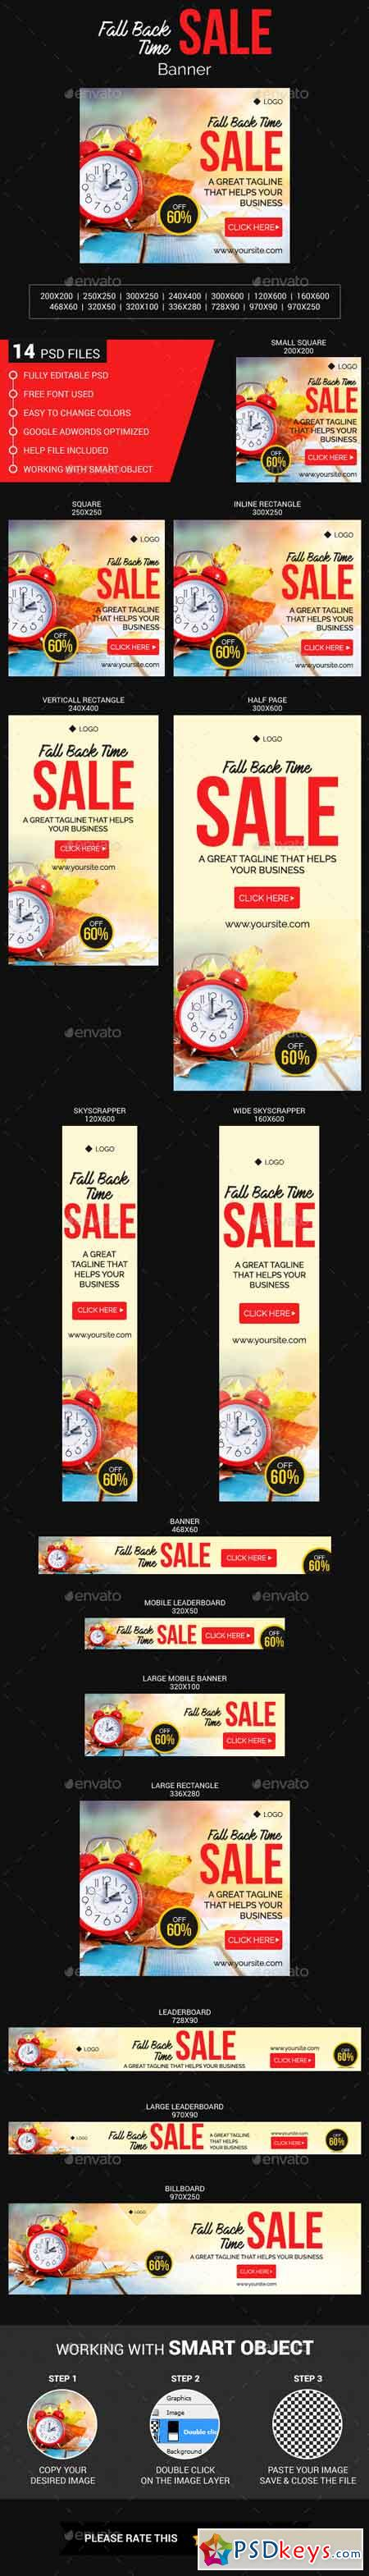 Fall Back Time Sale 20448001